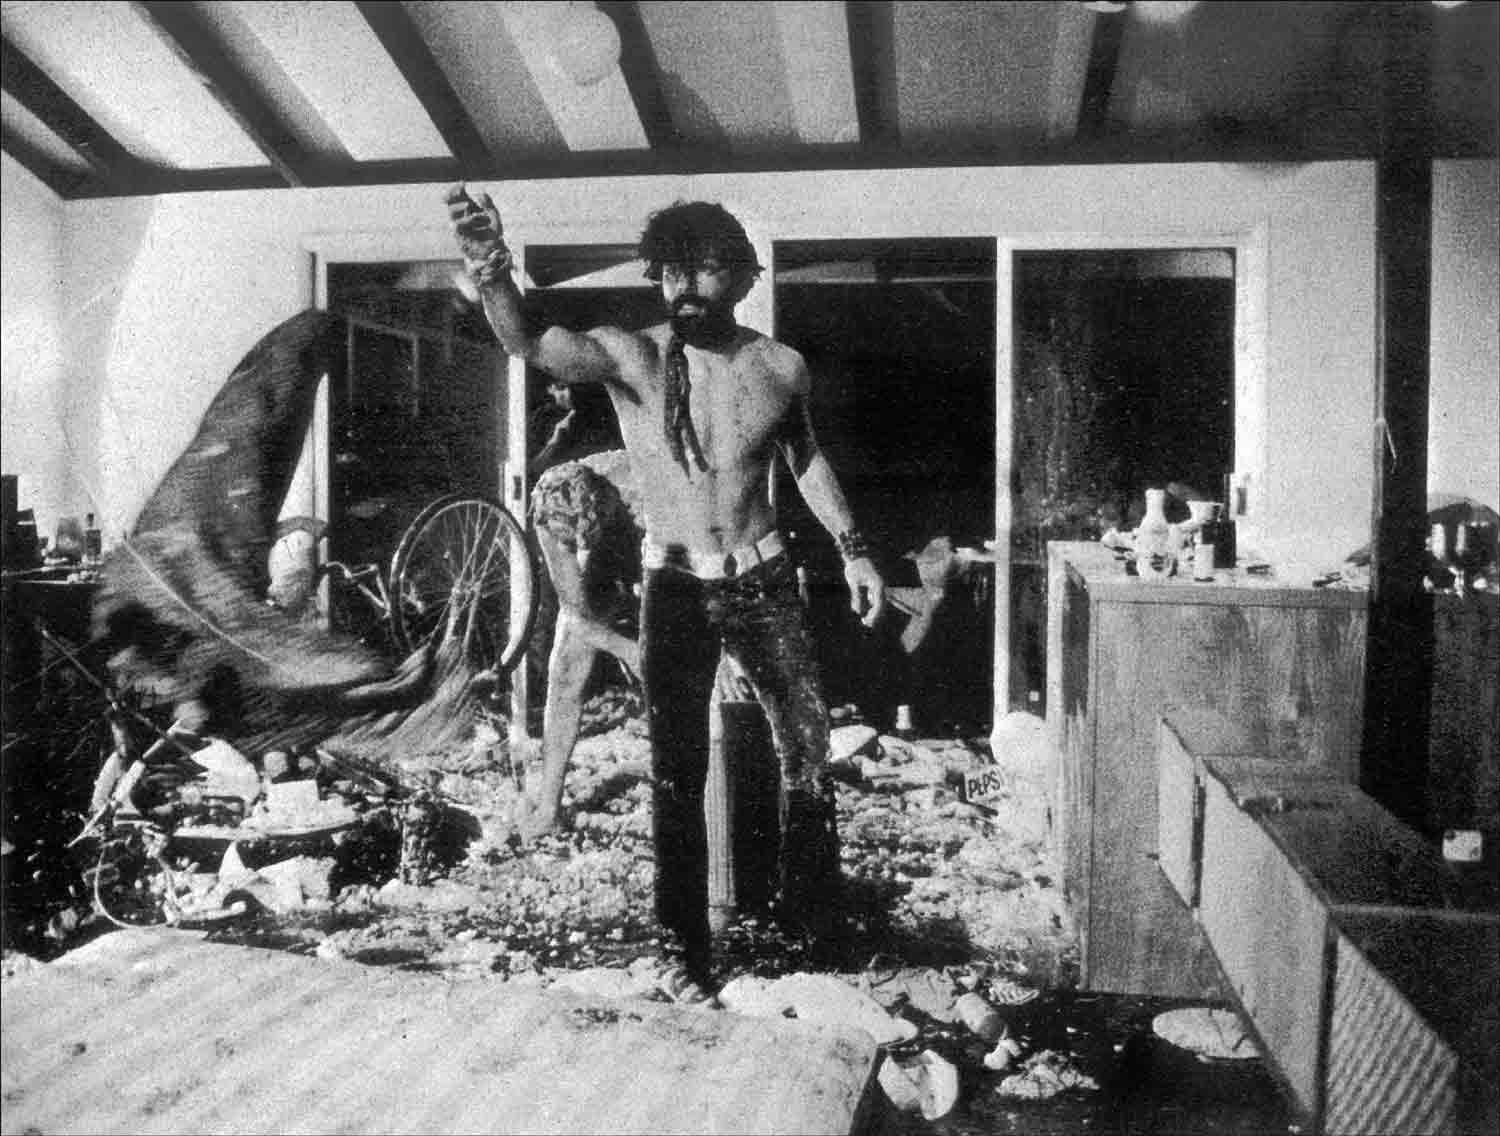 Rolando-Pena_05_Happenings_The Paella-Bycicle-Totality-Crucifixion_Four-Stars_Andy-Warhol_1967.jpg